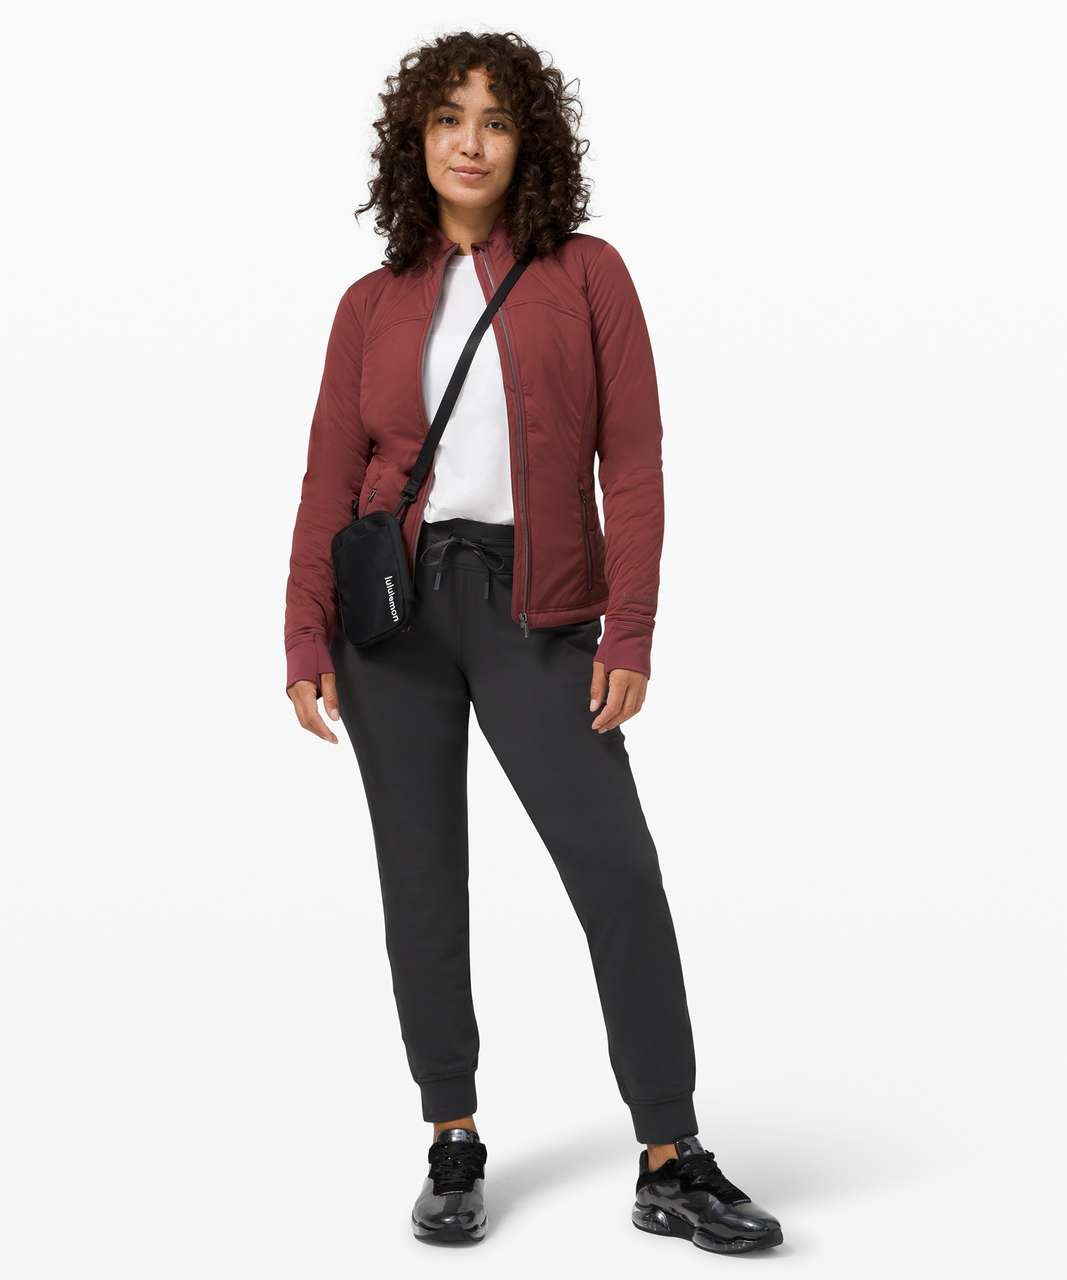 Lululemon Dynamic Movement Jacket - Savannah